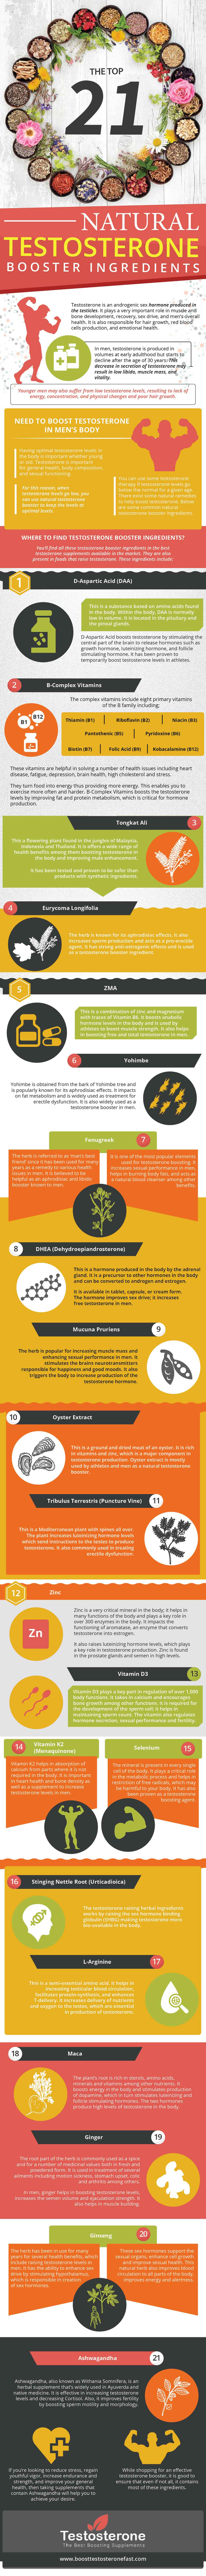 natural-testosterone-booster-ingredient-infographic